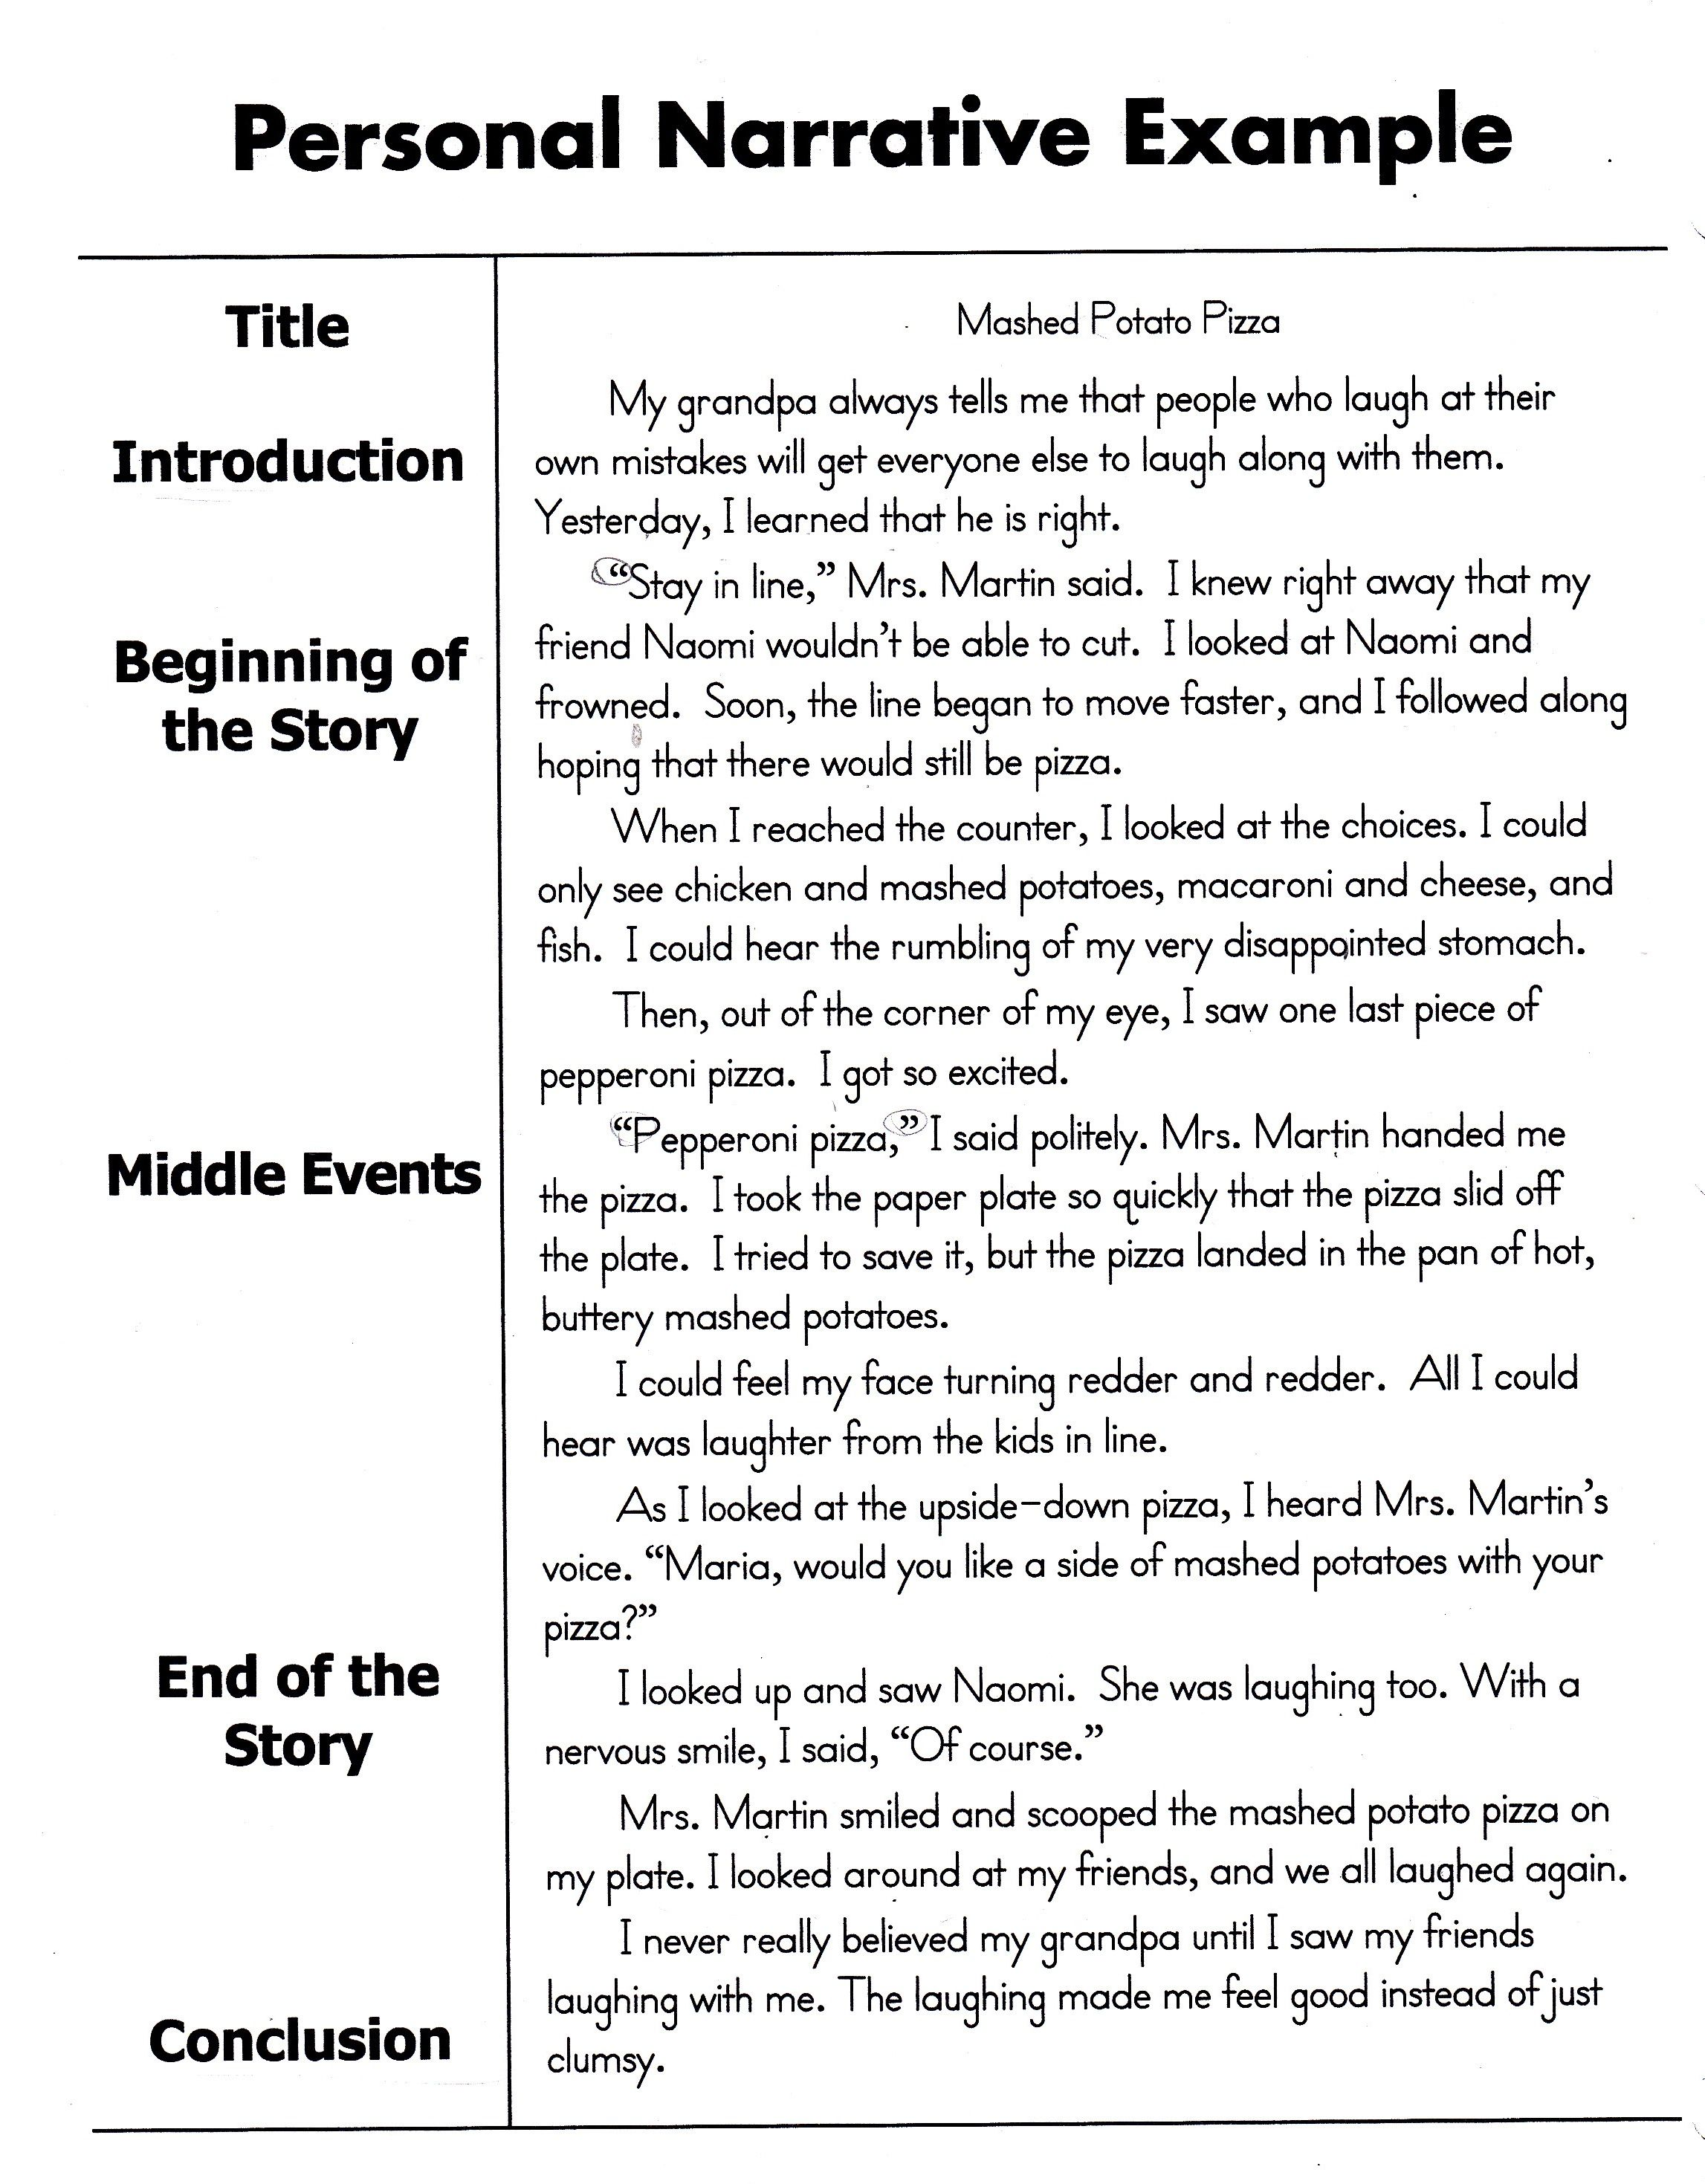 how to write a personal narrative essay for 4th 5th grade oc make your gifts special how to write a personal narrative essay for grade oc narrative essay formal letter sample